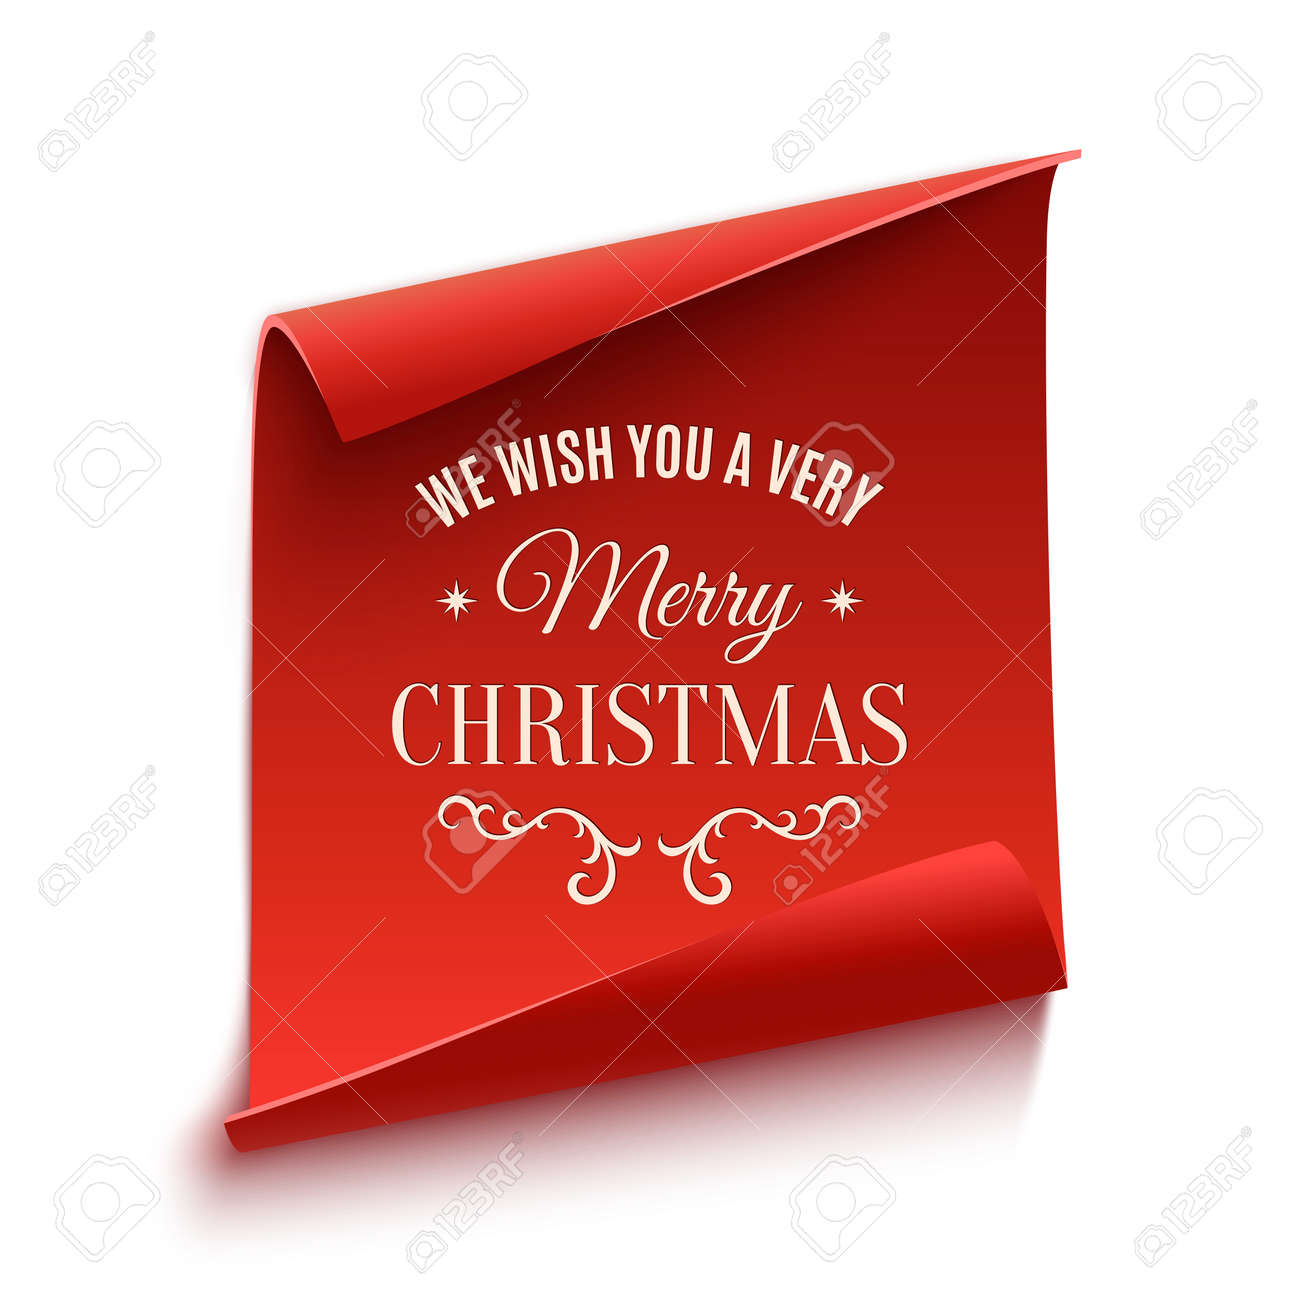 We wish you a very Merry Christmas, greeting card template. Red, curved, paper banner isolated on white background. Vector illustration. - 48347817